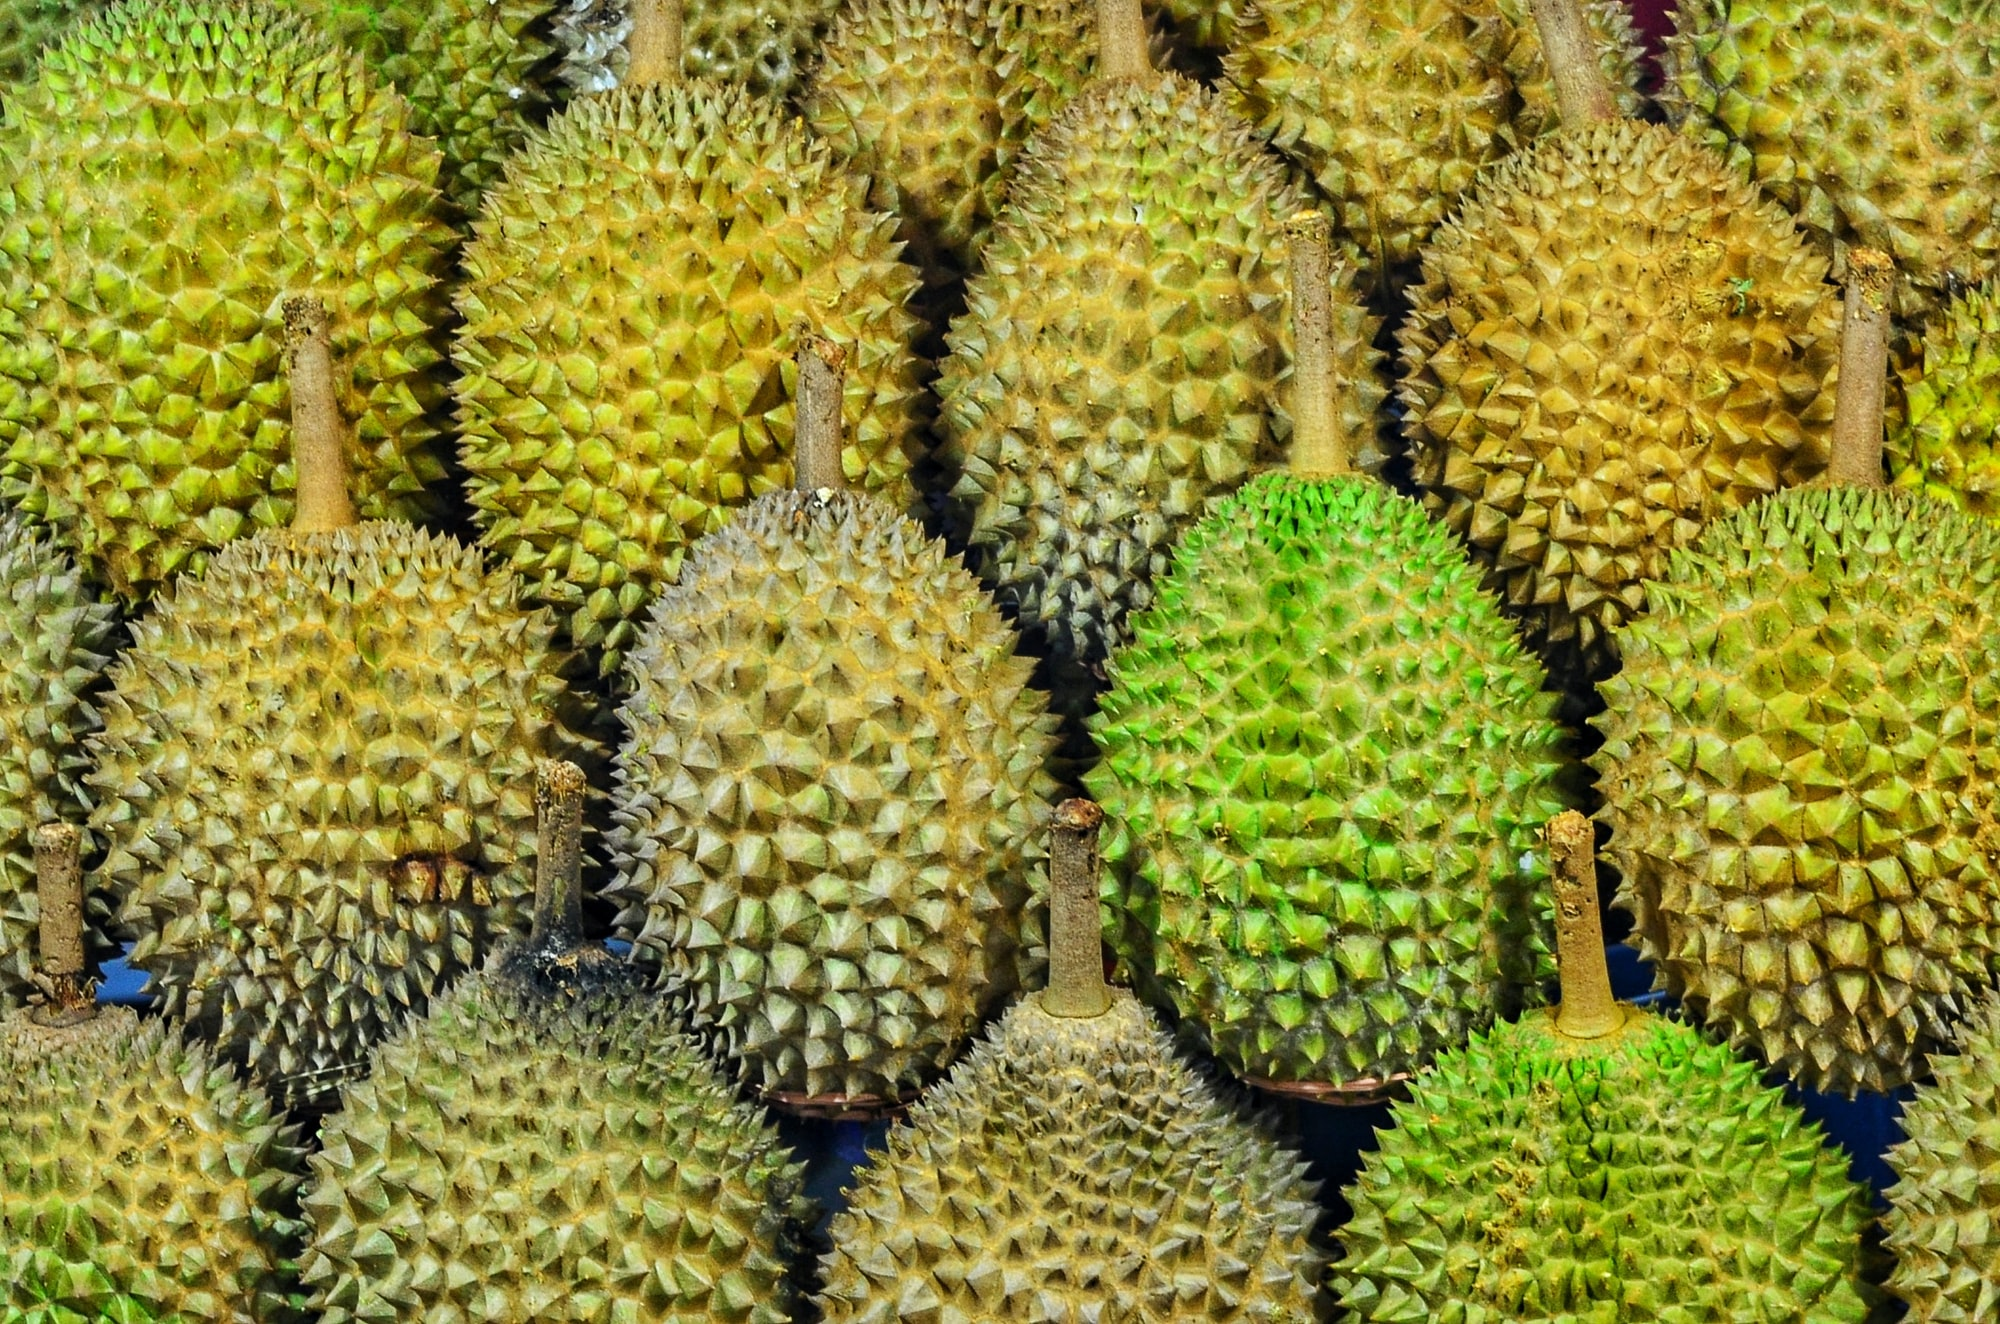 China's Consumption of The Durian Fruit Putting Malaysian Tribal lands In Jeopardy